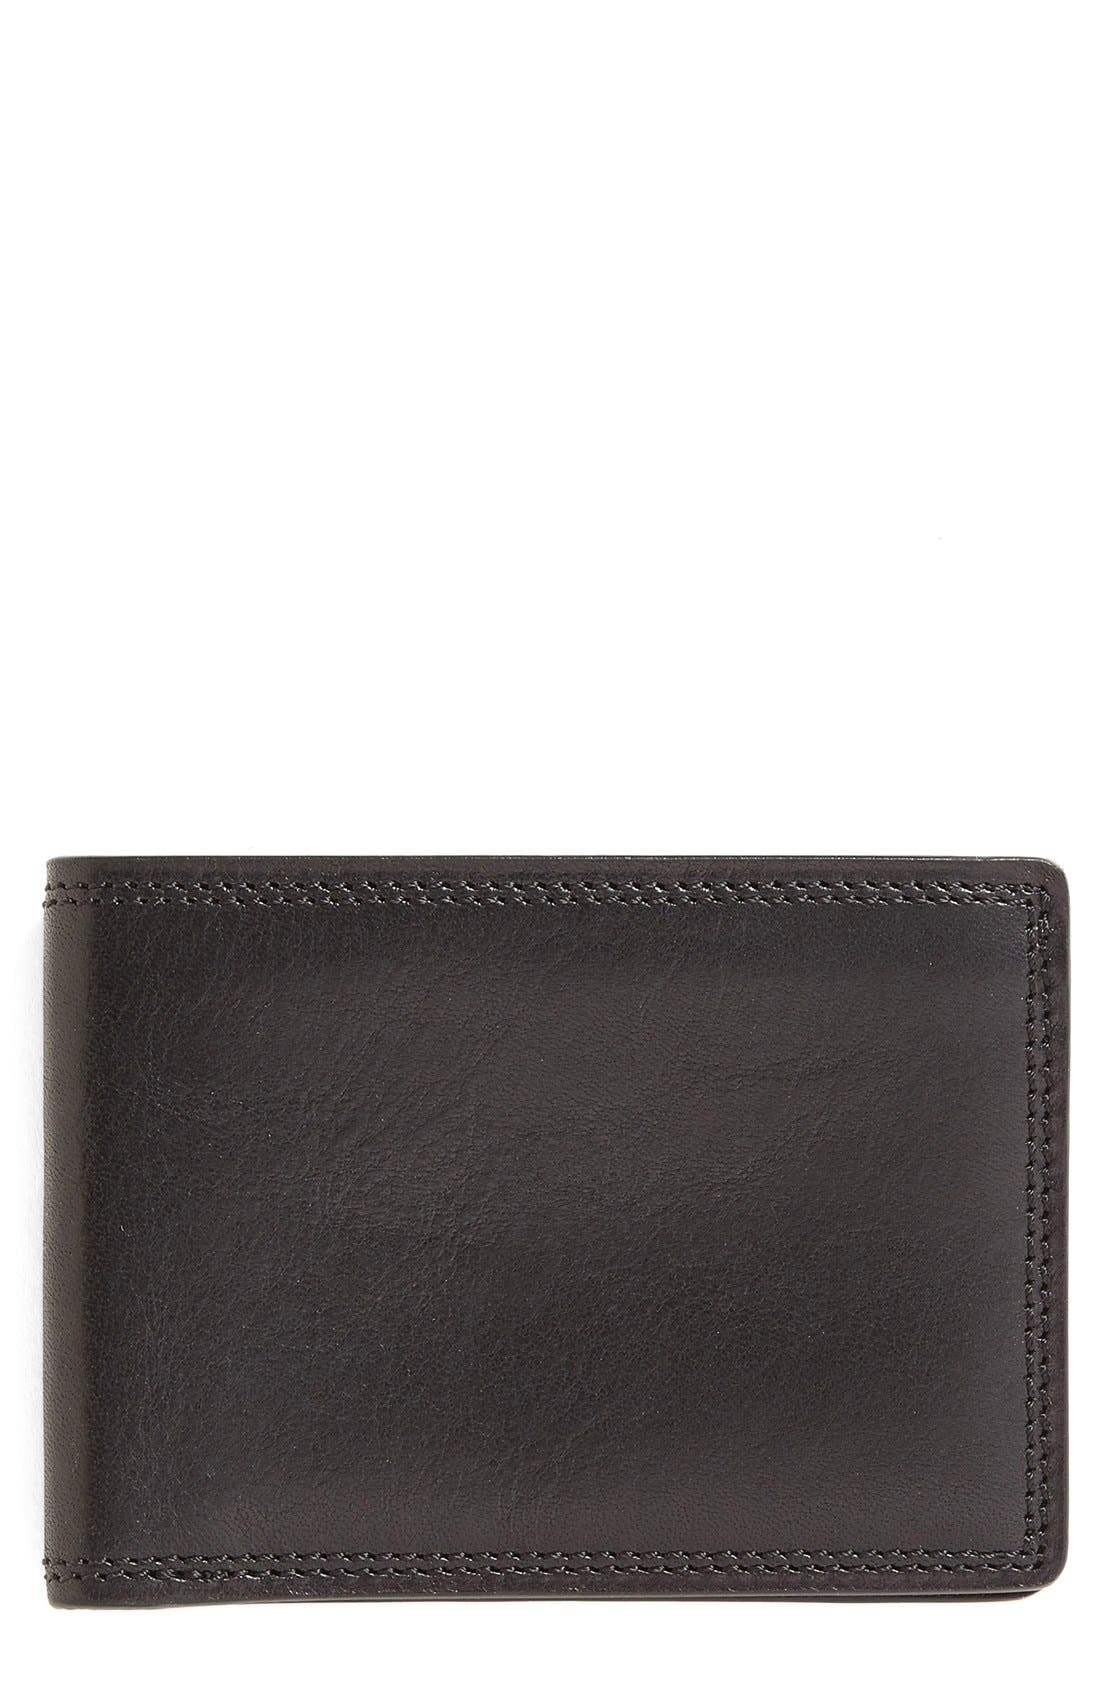 Leather Bifold Wallet,                             Main thumbnail 1, color,                             Black